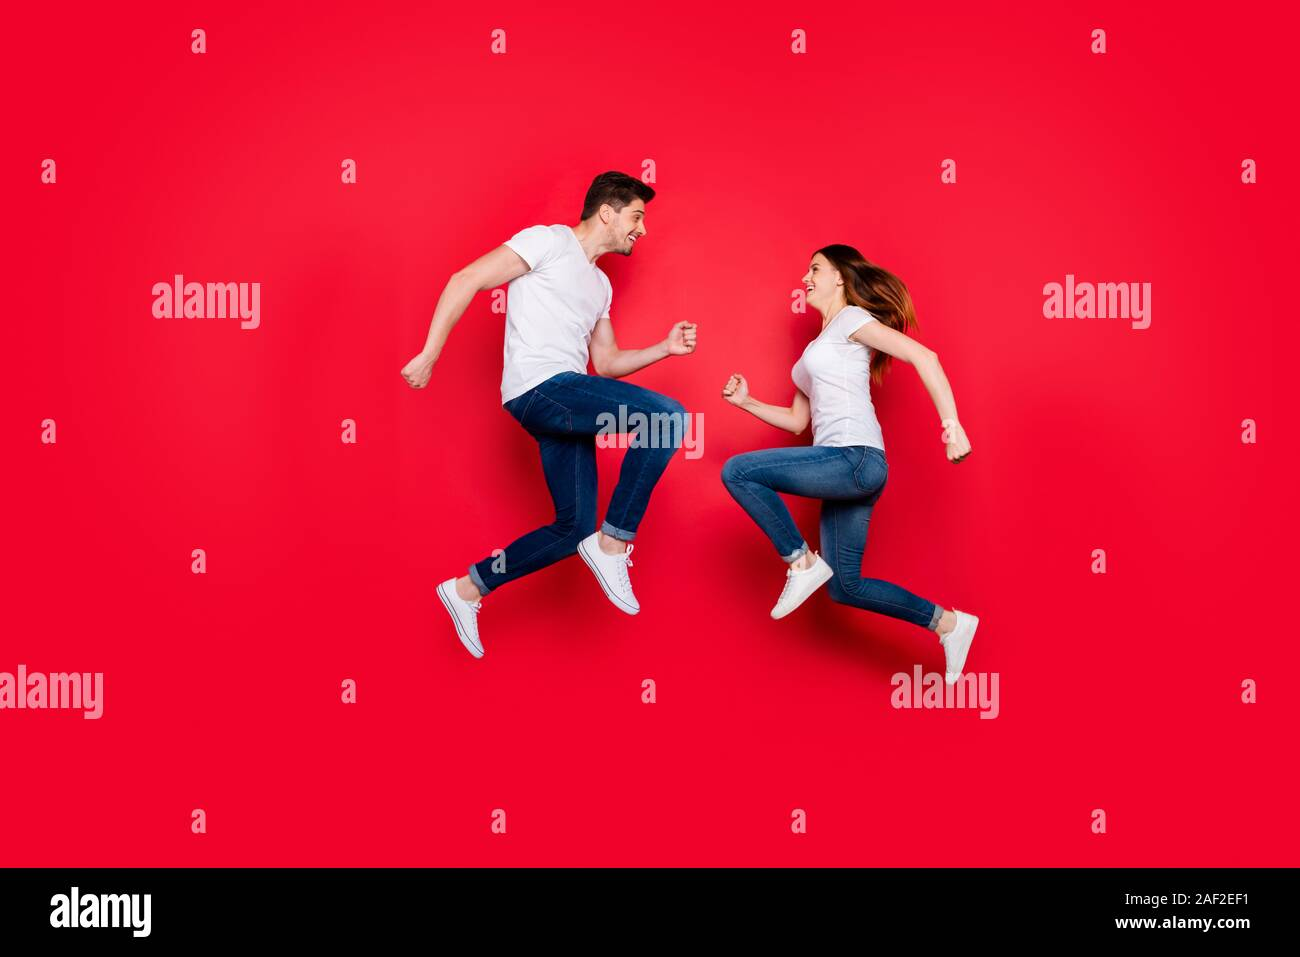 Side Profile Full Body Size Photo Of Cheerful Nice Cute Couple Of Girlfriend Boyfriend Bumping Into Each Other Smiling Running Jumping Jeans Denim Stock Photo Alamy